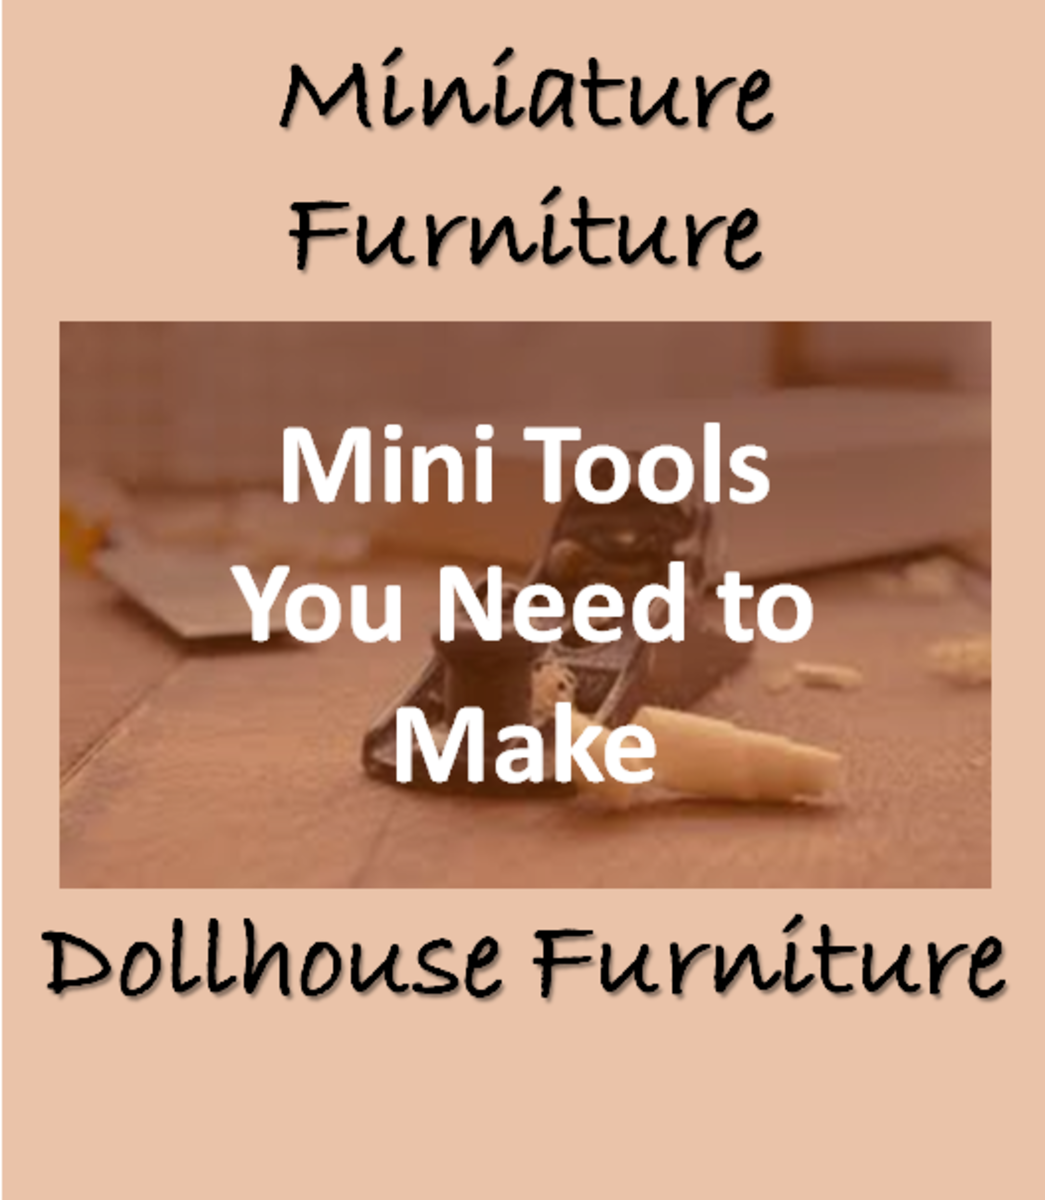 Tools You Need to Make Dollhouse Furniture